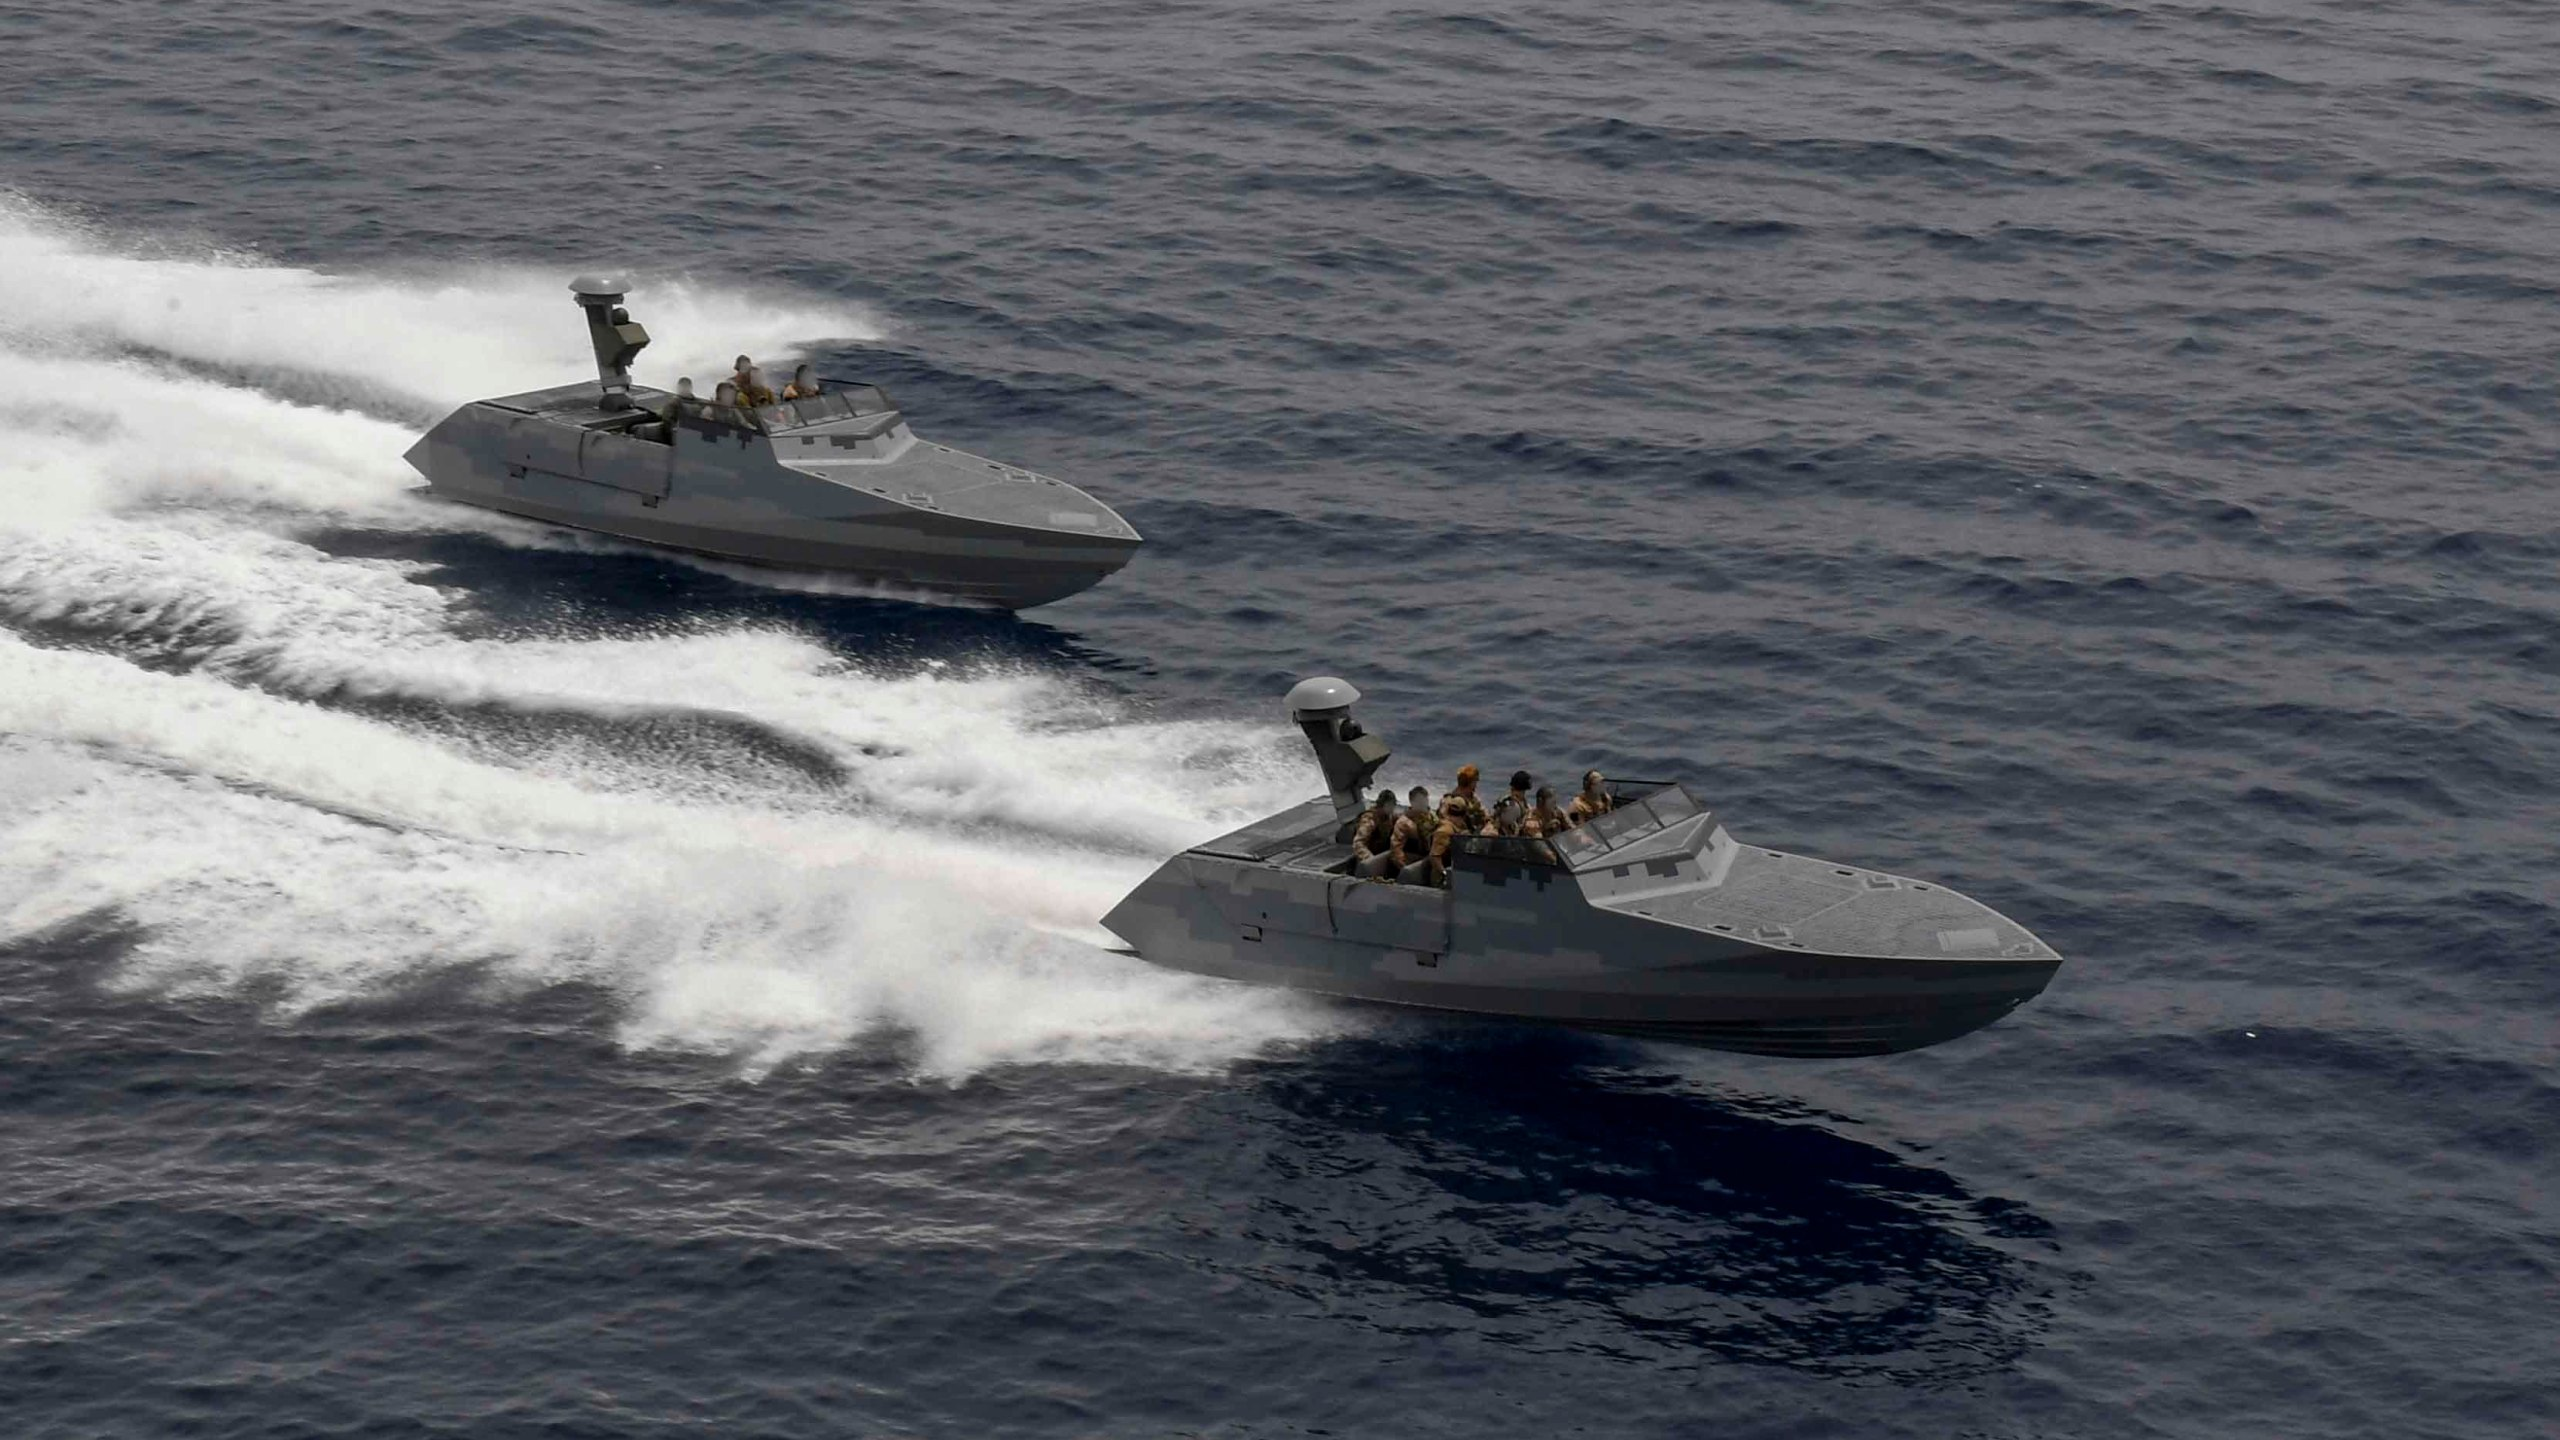 """Two combatant craft assault crafts (CCA) assigned to Special Boat Team TWENTY perform a high-speed pass alongside the Expeditionary Sea Base USS Hershel """"Woody"""" Williams in the Mediterranean Sea on May 26, 2021. (U.S. Navy photo by Mass Communication Specialist 2nd Class Eric Coffer)"""